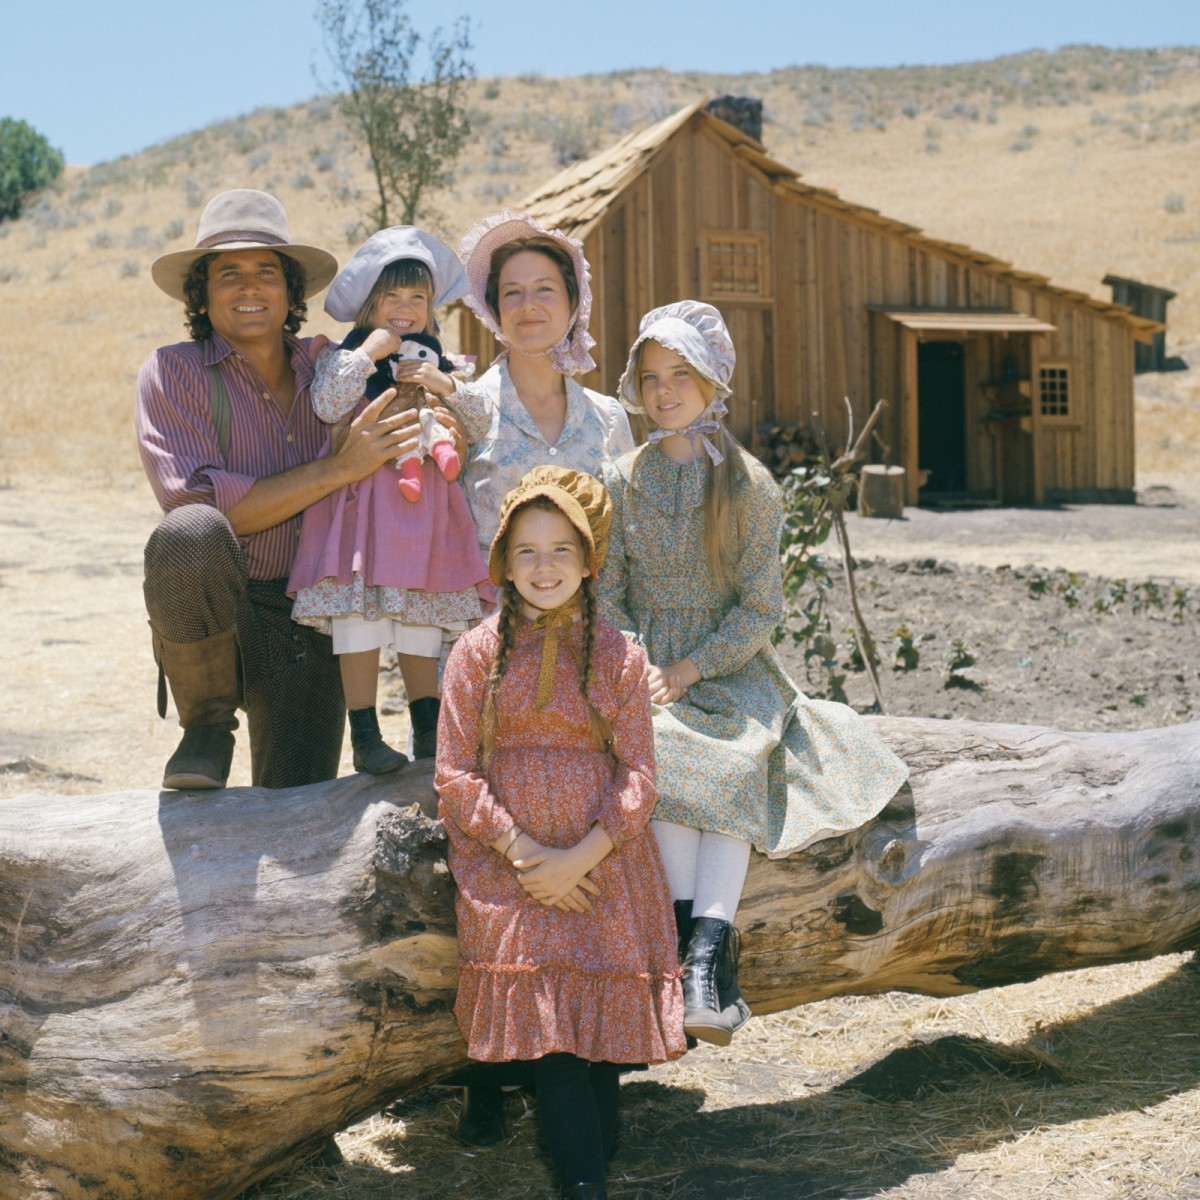 Little House on the Prairie photo via Getty Images